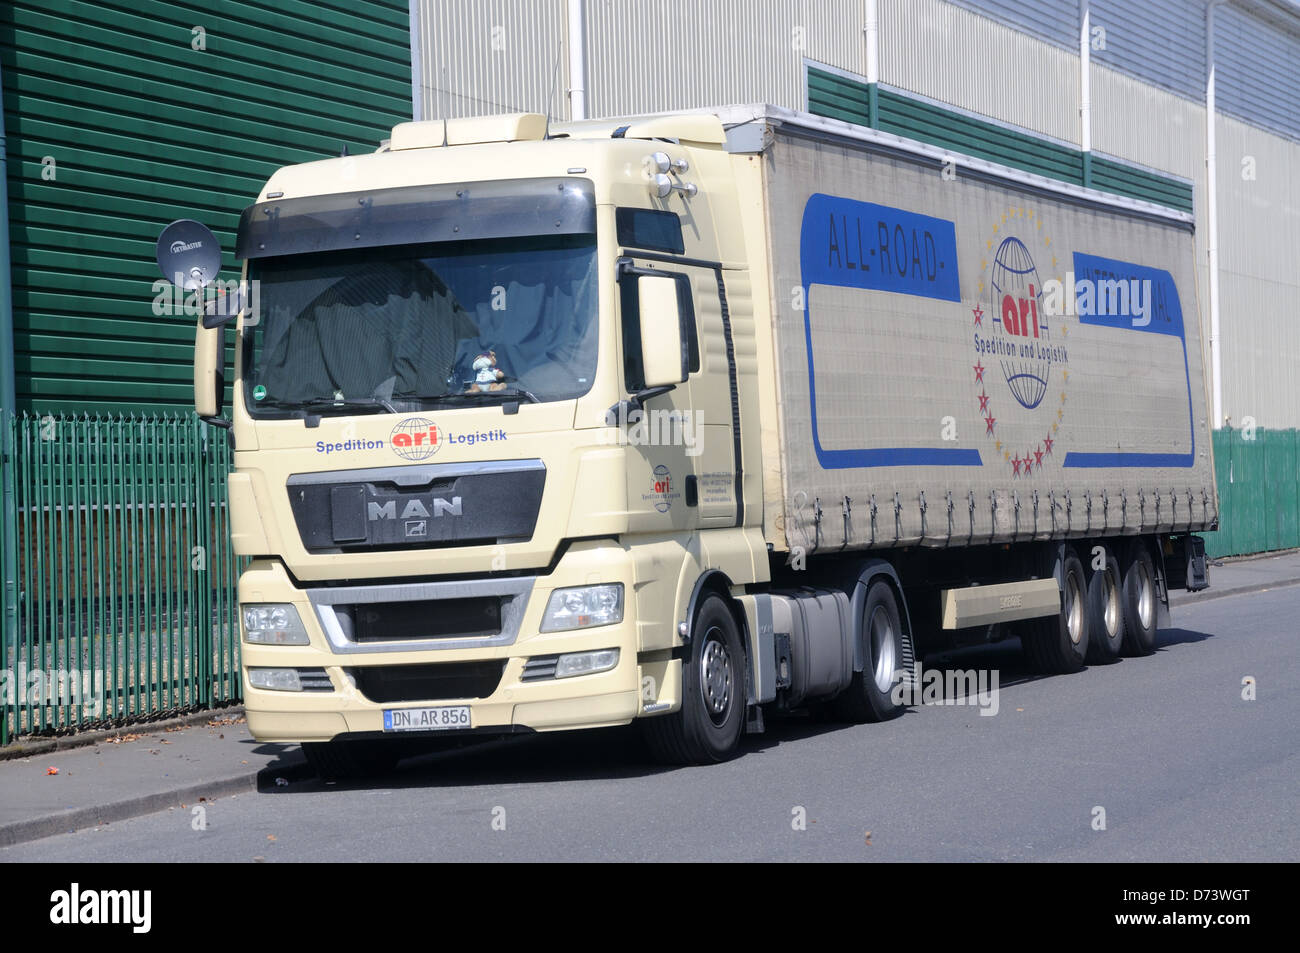 A MAN TGX 18.440 tractor unit and trailer in the livery of German carrier ARI in Leicester, Leicestershire, England Stock Photo